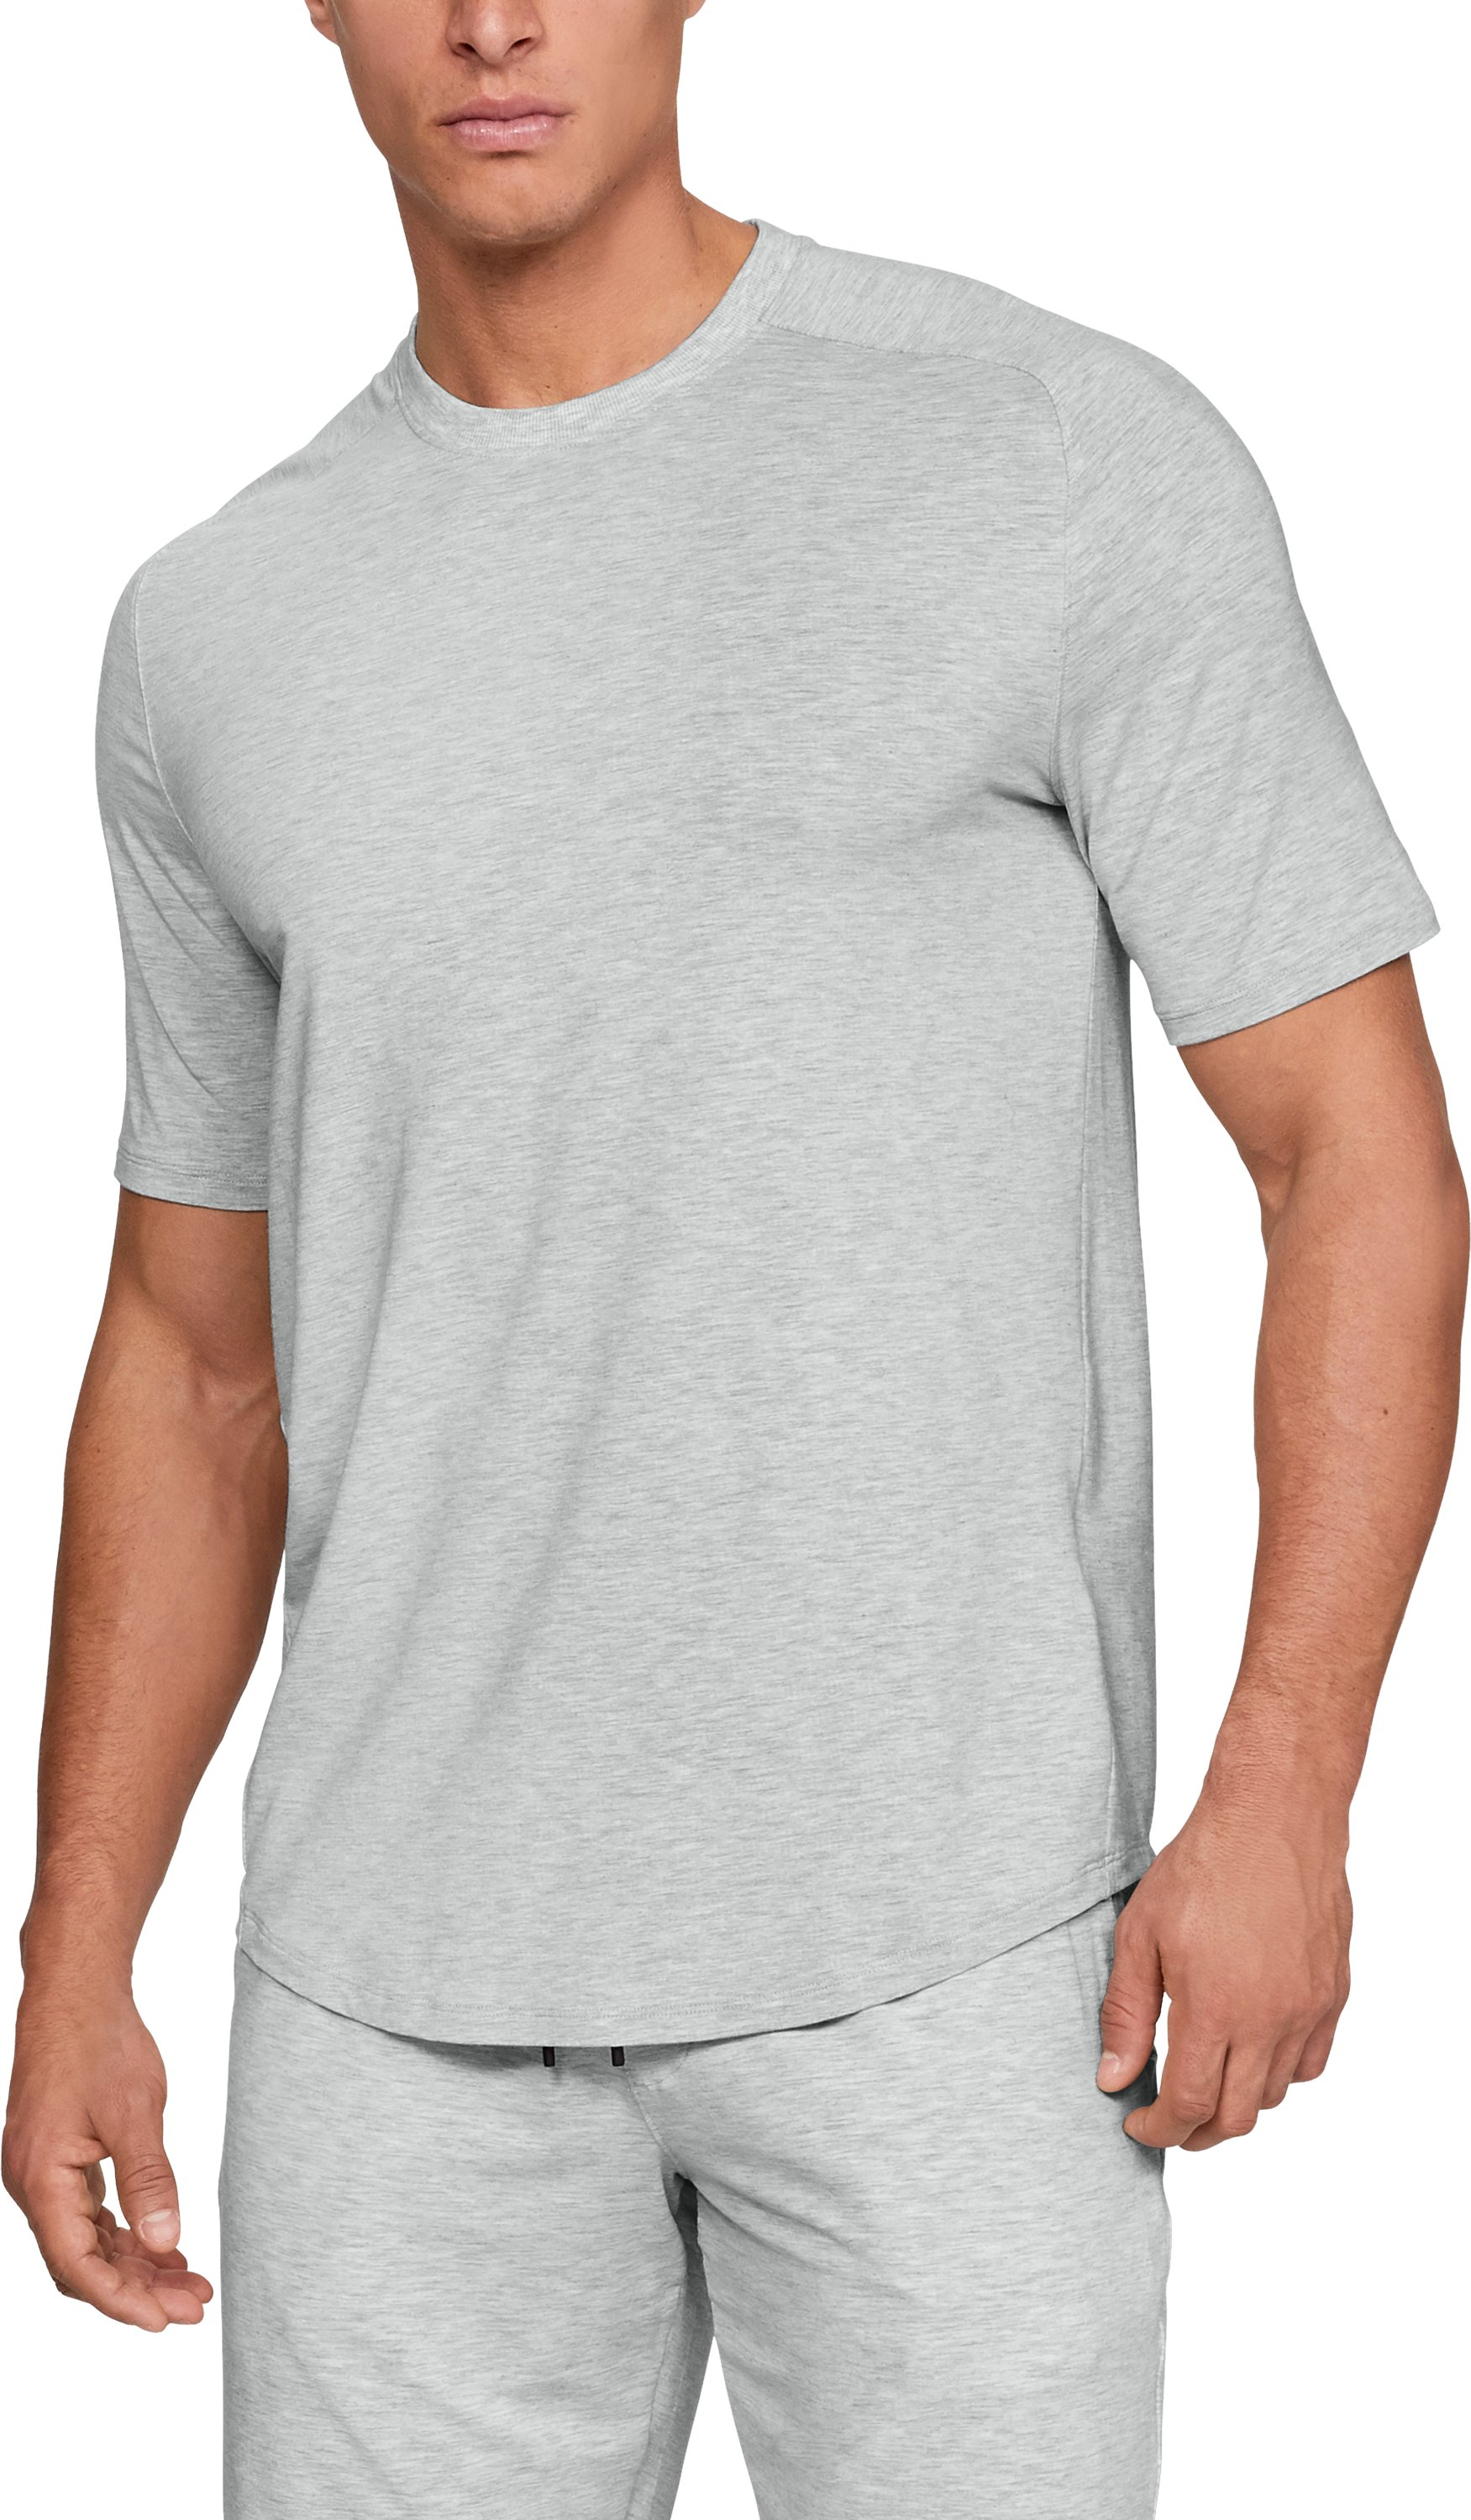 Men's Athlete Recovery Sleepwear™ Ultra Comfort Short Sleeve, Elemental Medium Heather